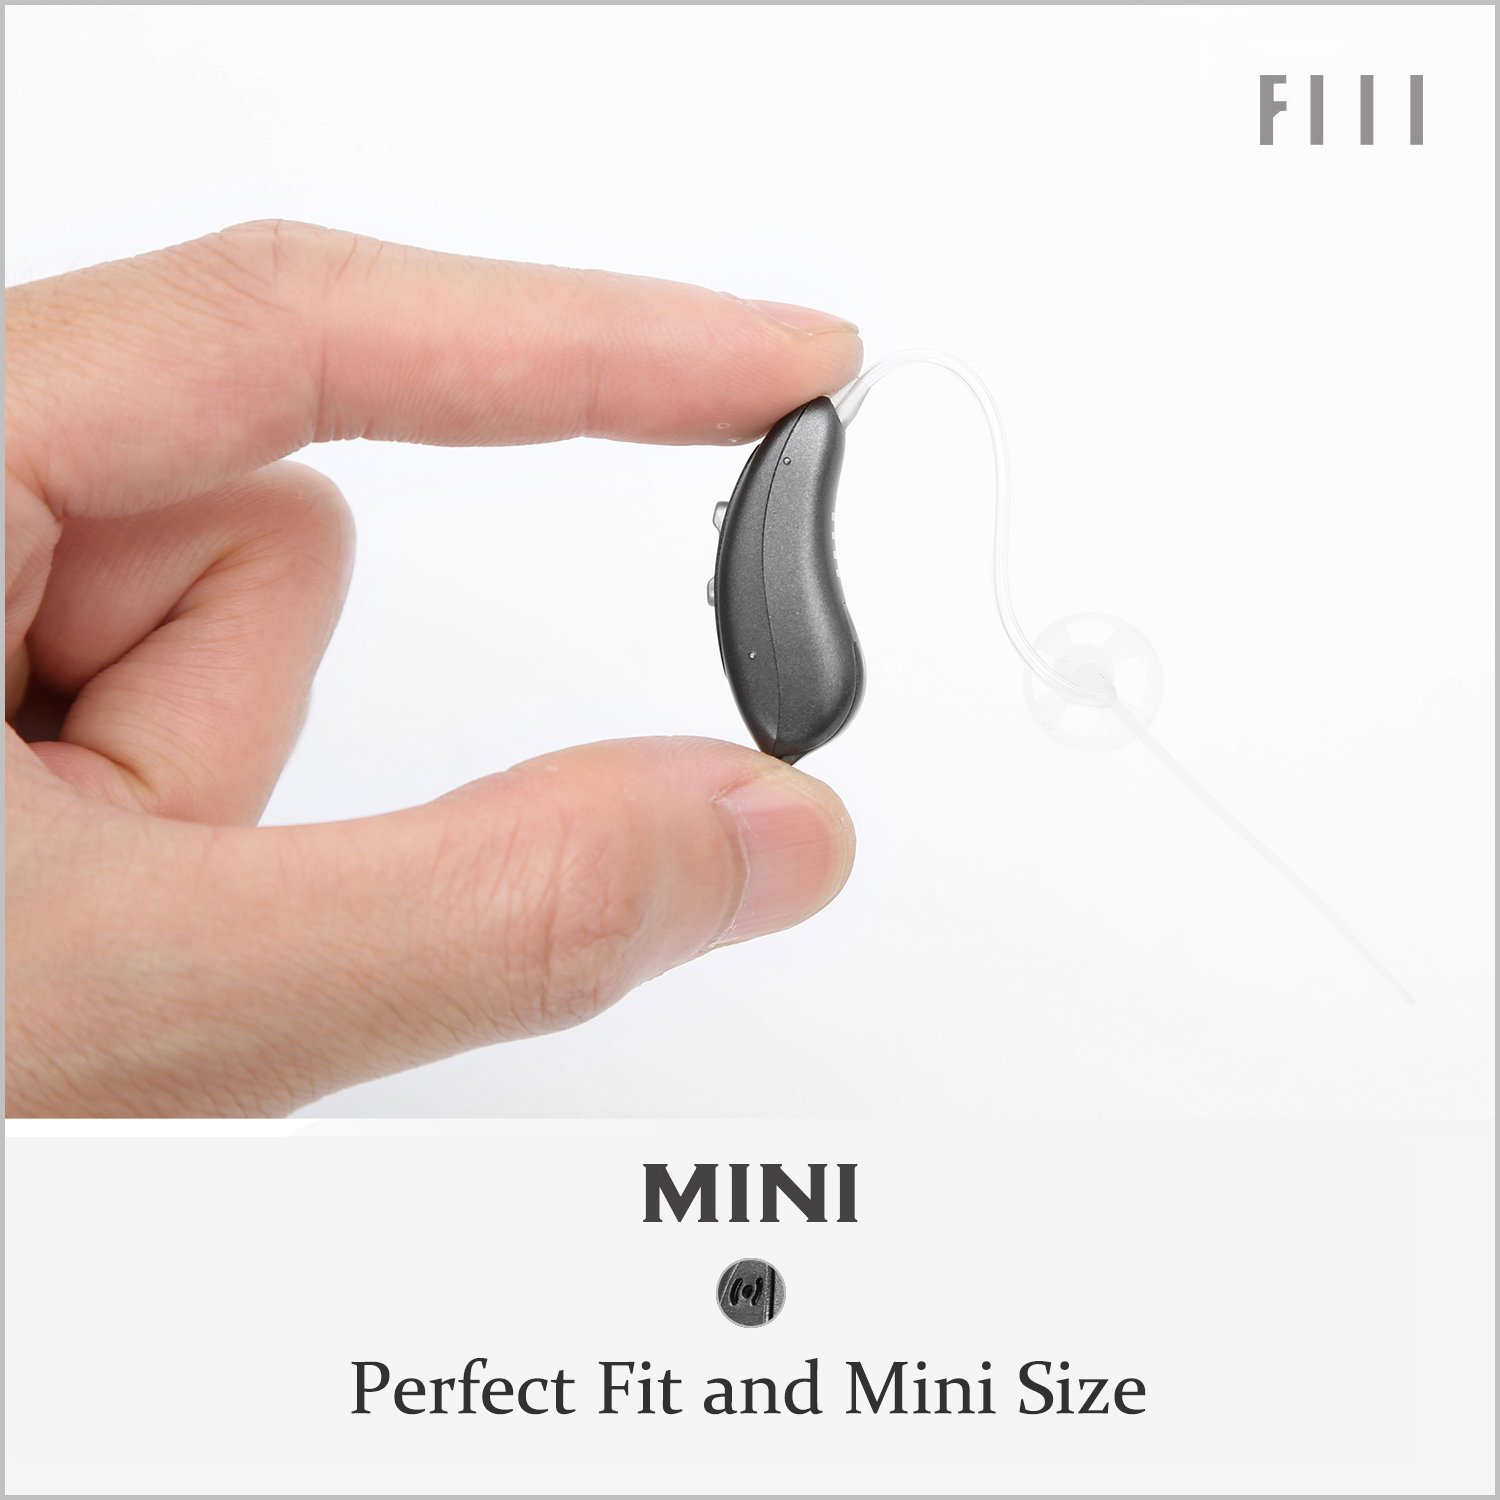 Fiil Hearing Amplifier Digital Volume Control Sound Living Aids Amplifiers Accessories Battery For Left Ear Right Mini Adjustable Audiologist Designed